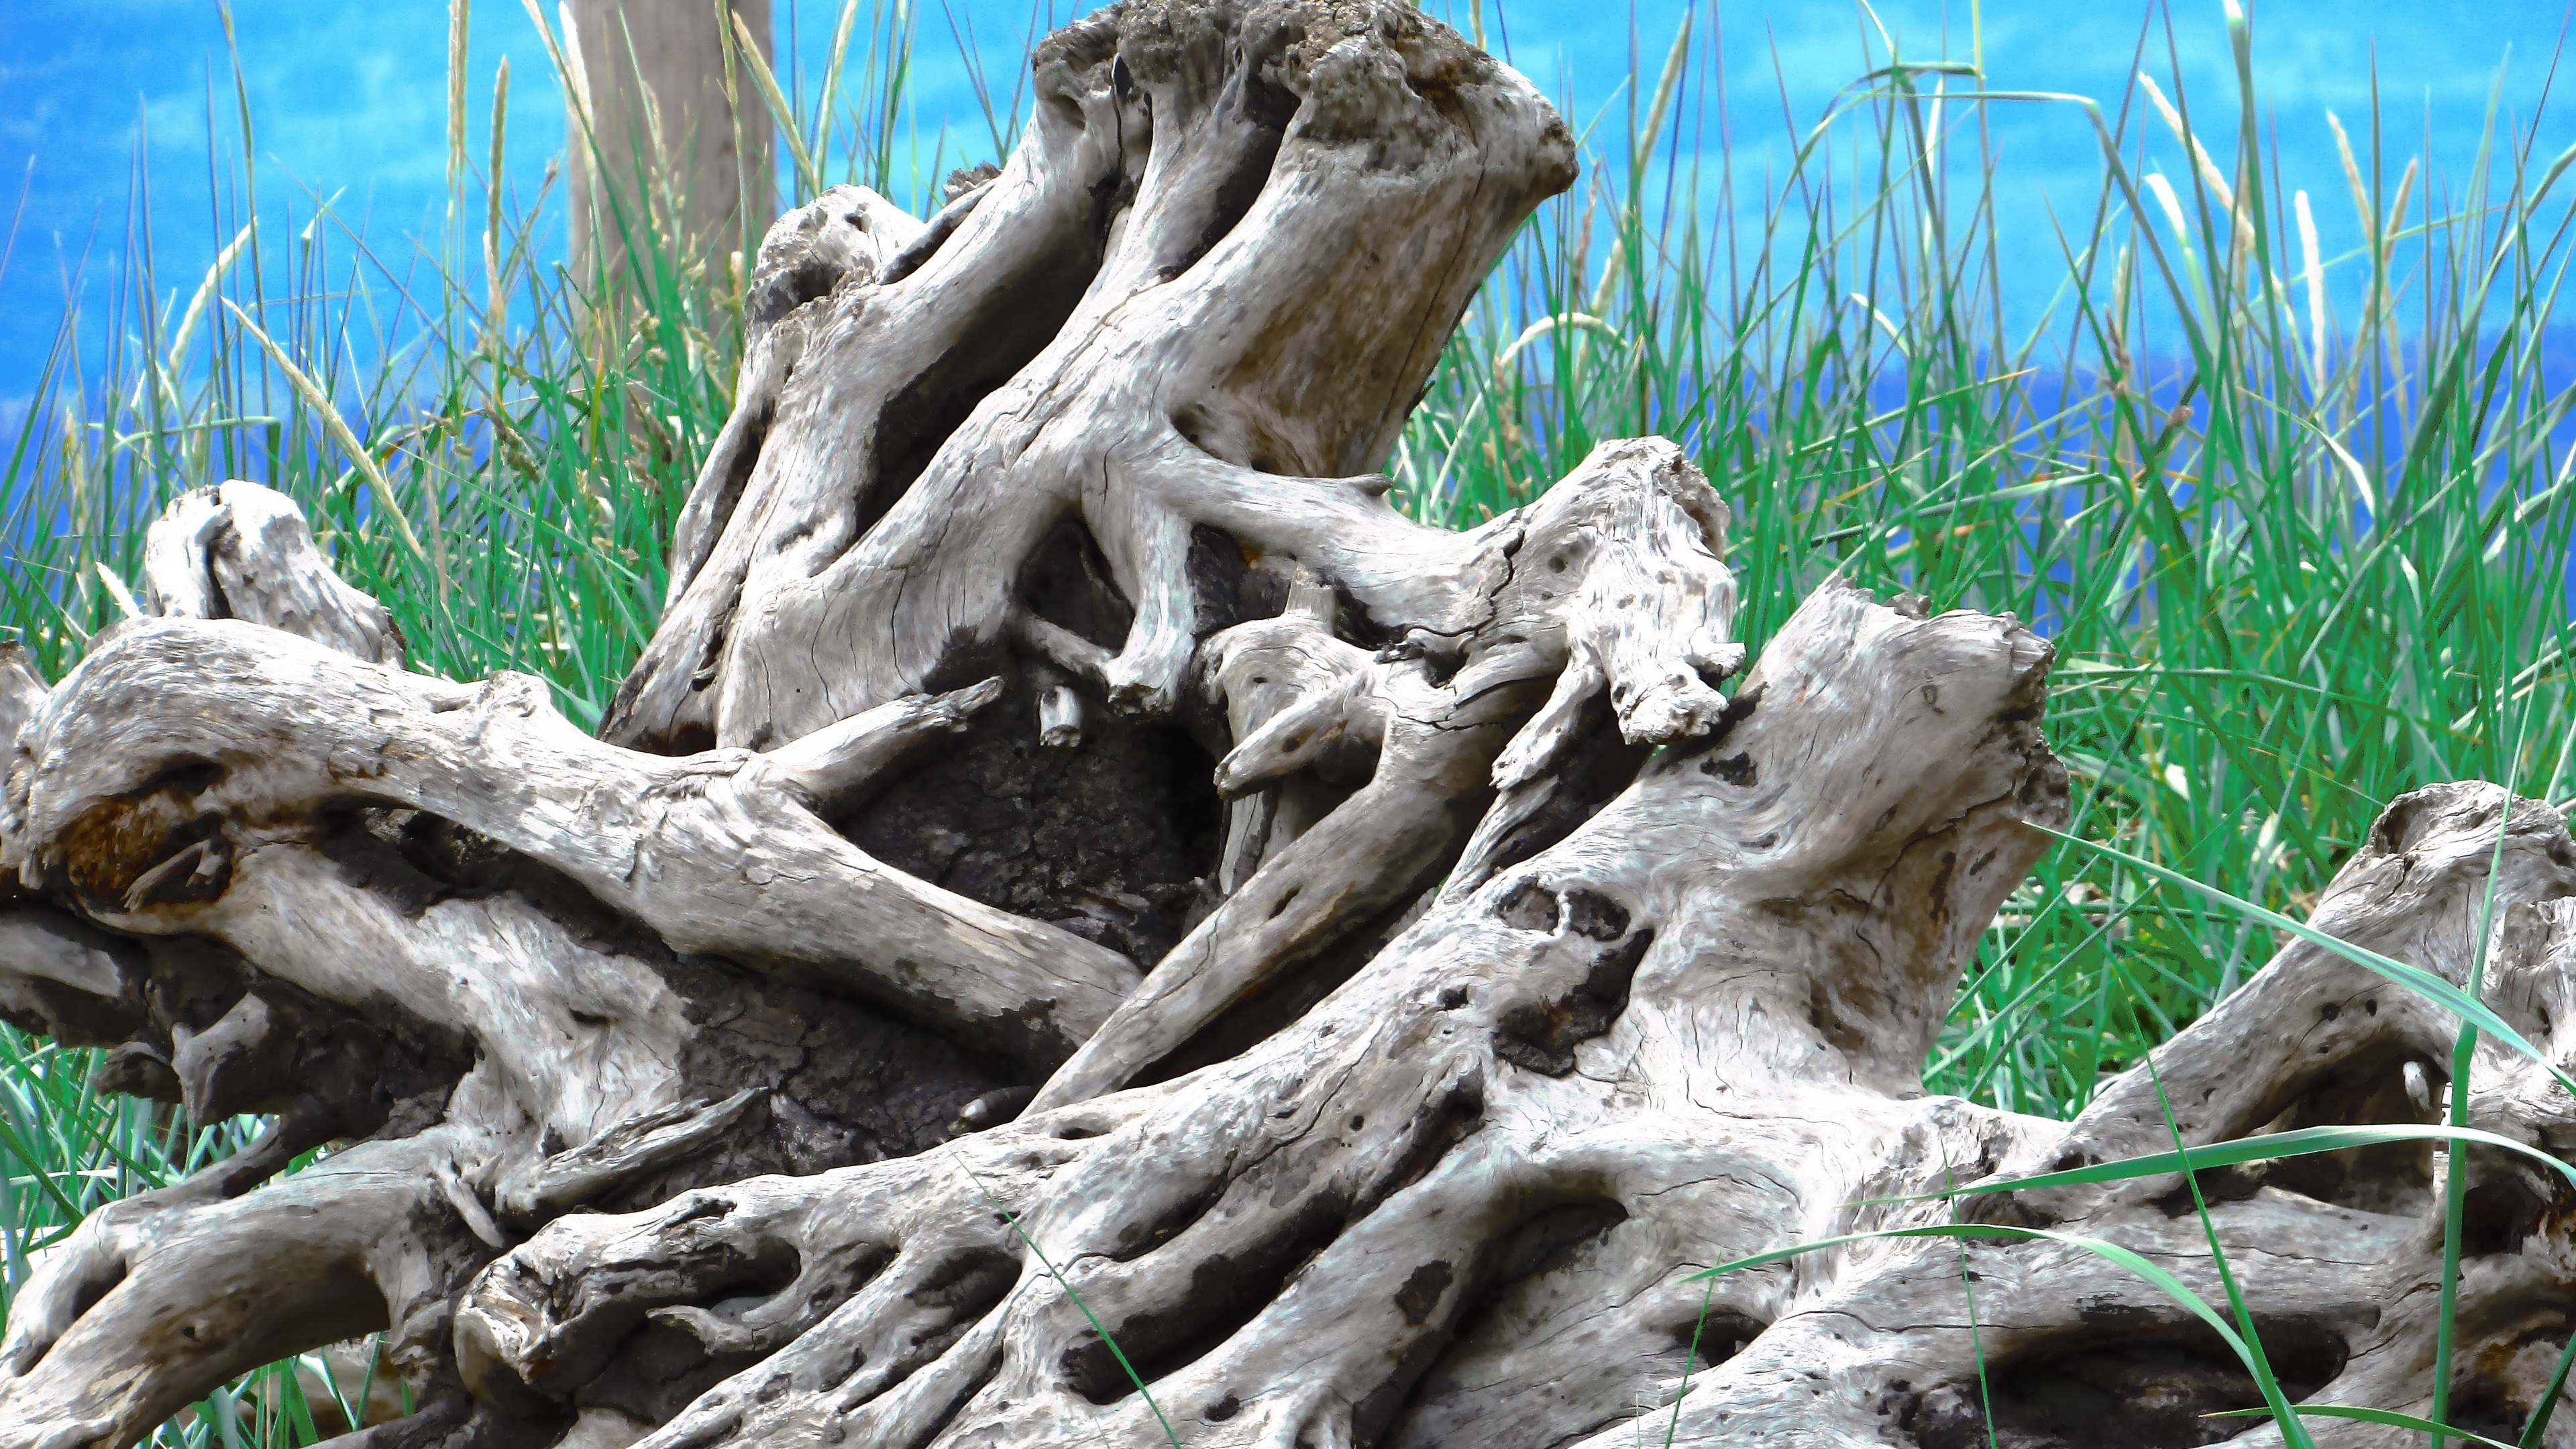 wood old roots branches 4k 1541117351 - wood, old, roots, branches 4k - wood, roots, Old